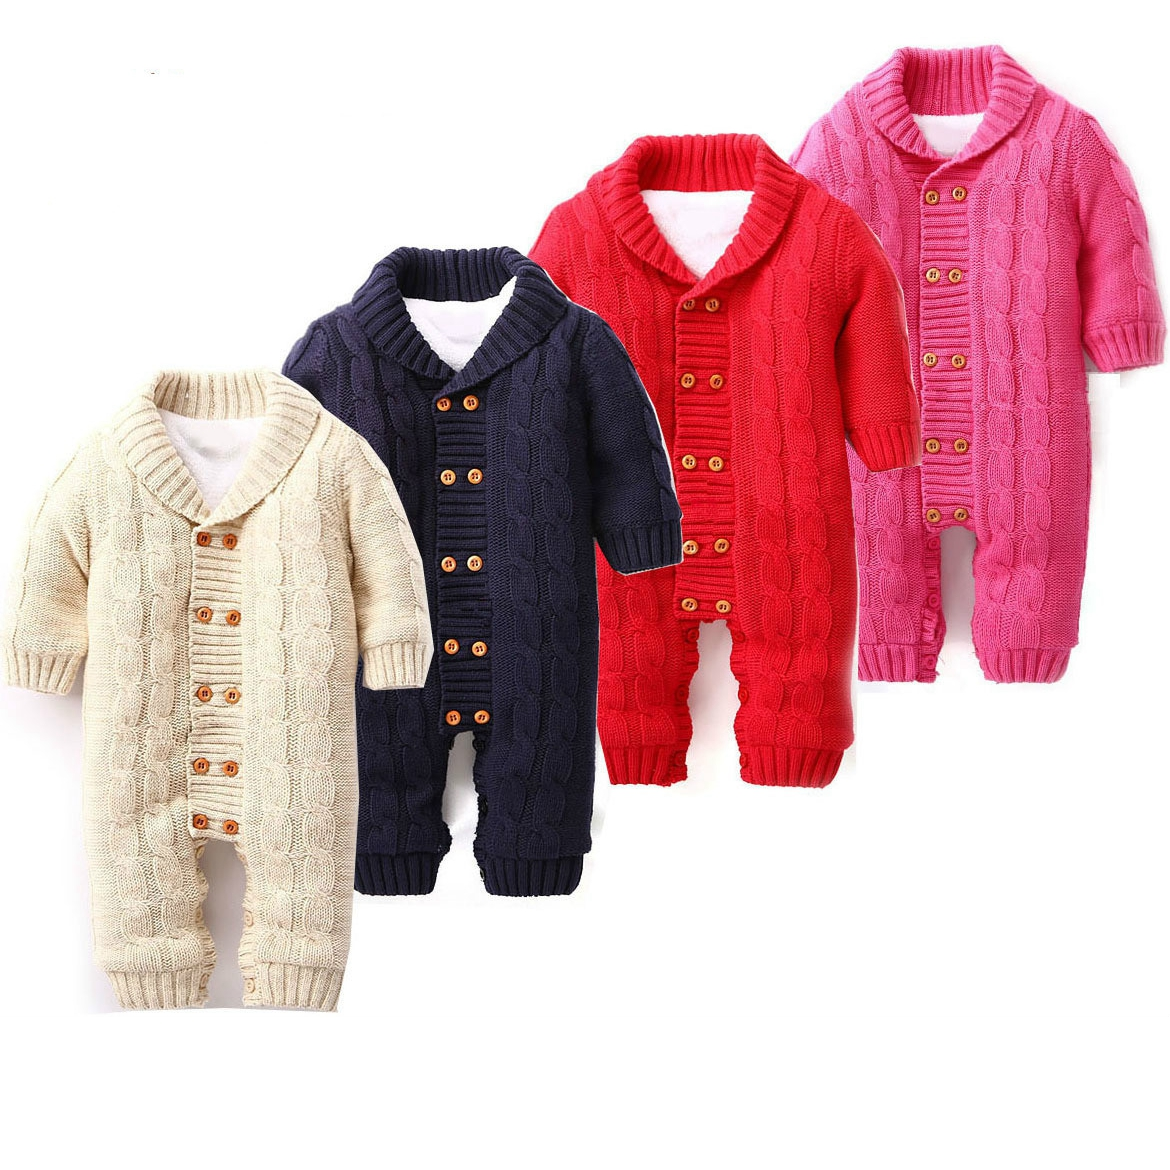 Thick Cotton Warm Infant Baby Rompers Winter Clothes Newborn Baby Boy Girl Knitted Sweater Jumpsuit Hooded Kid Toddler Outerwear<br>